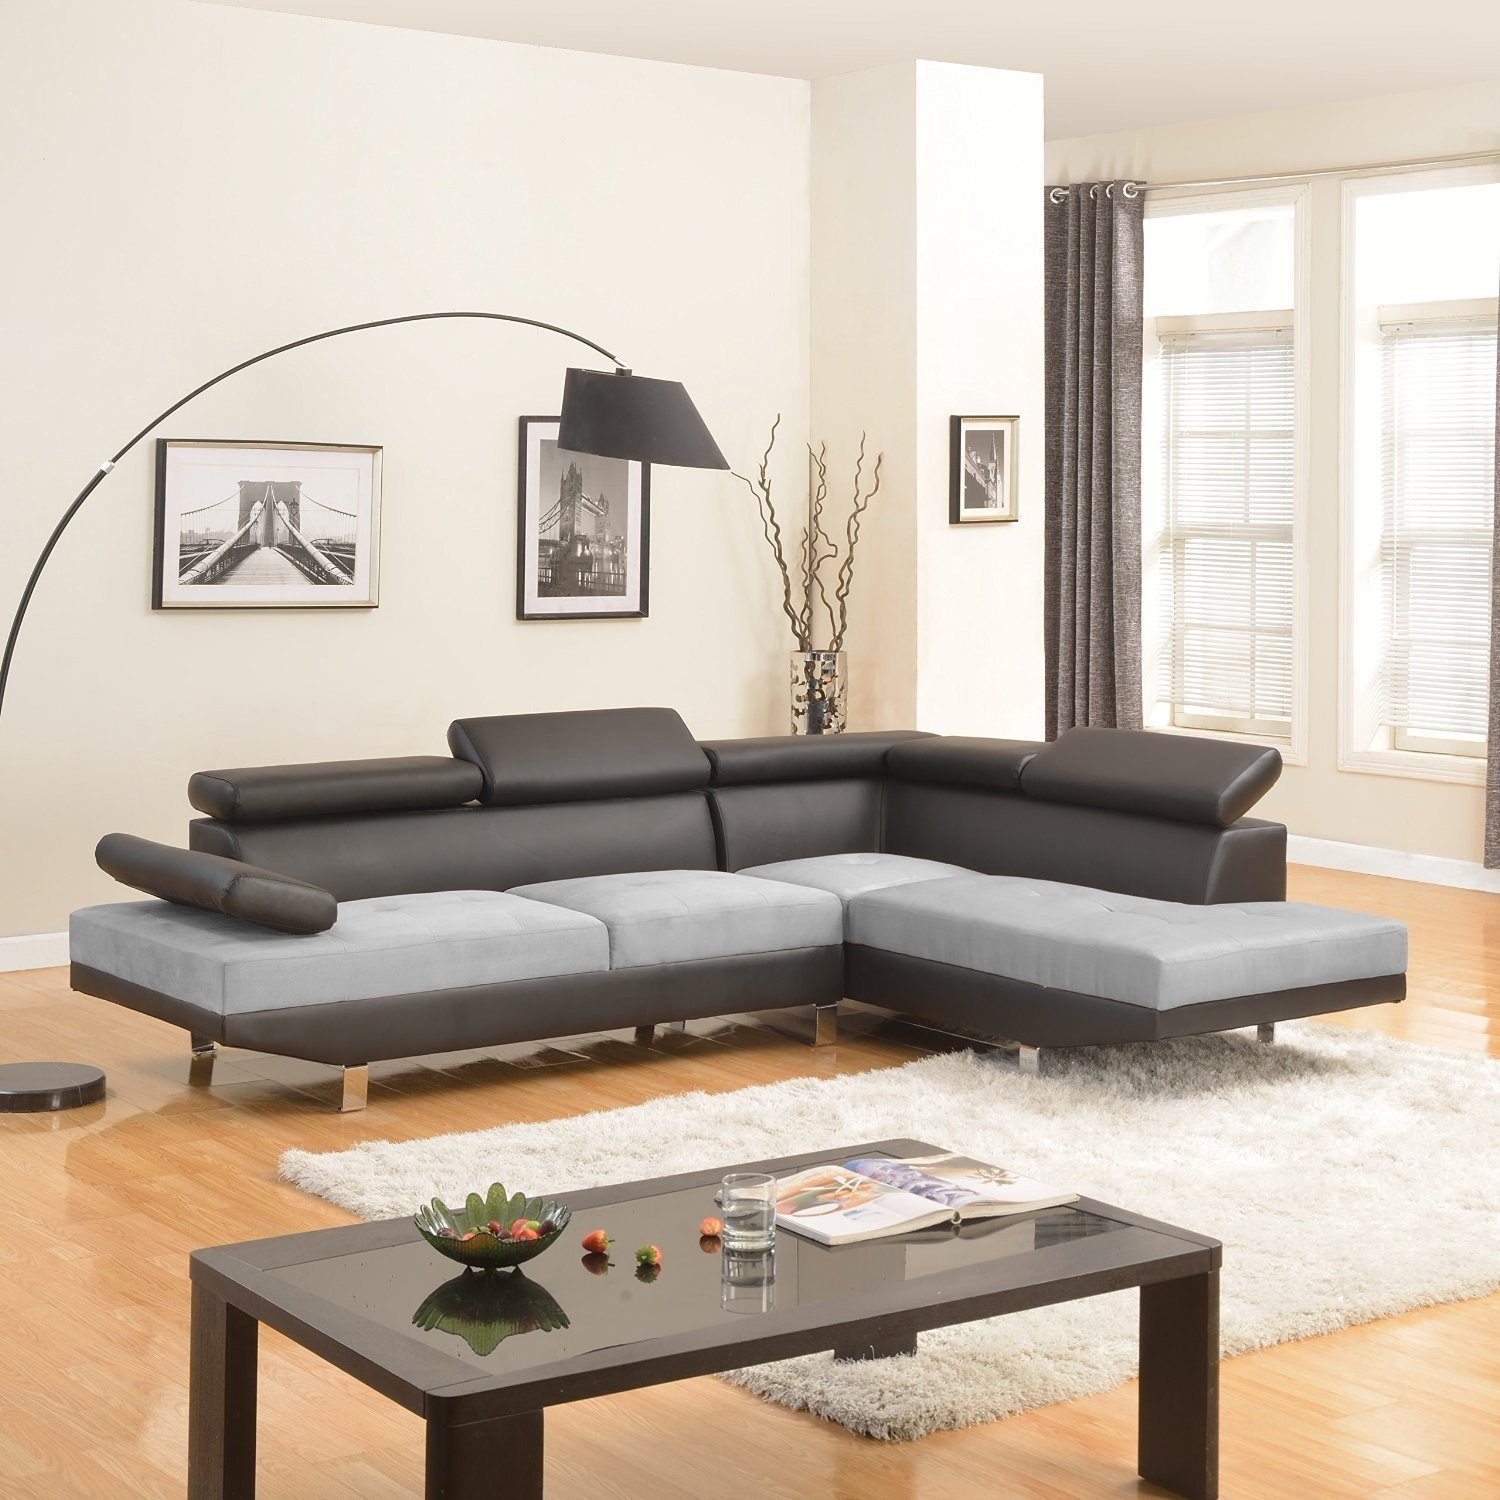 Details about Black Grey Contemporary Couch 2 Tone Microfiber Bonded  Leather Sectional Sofa